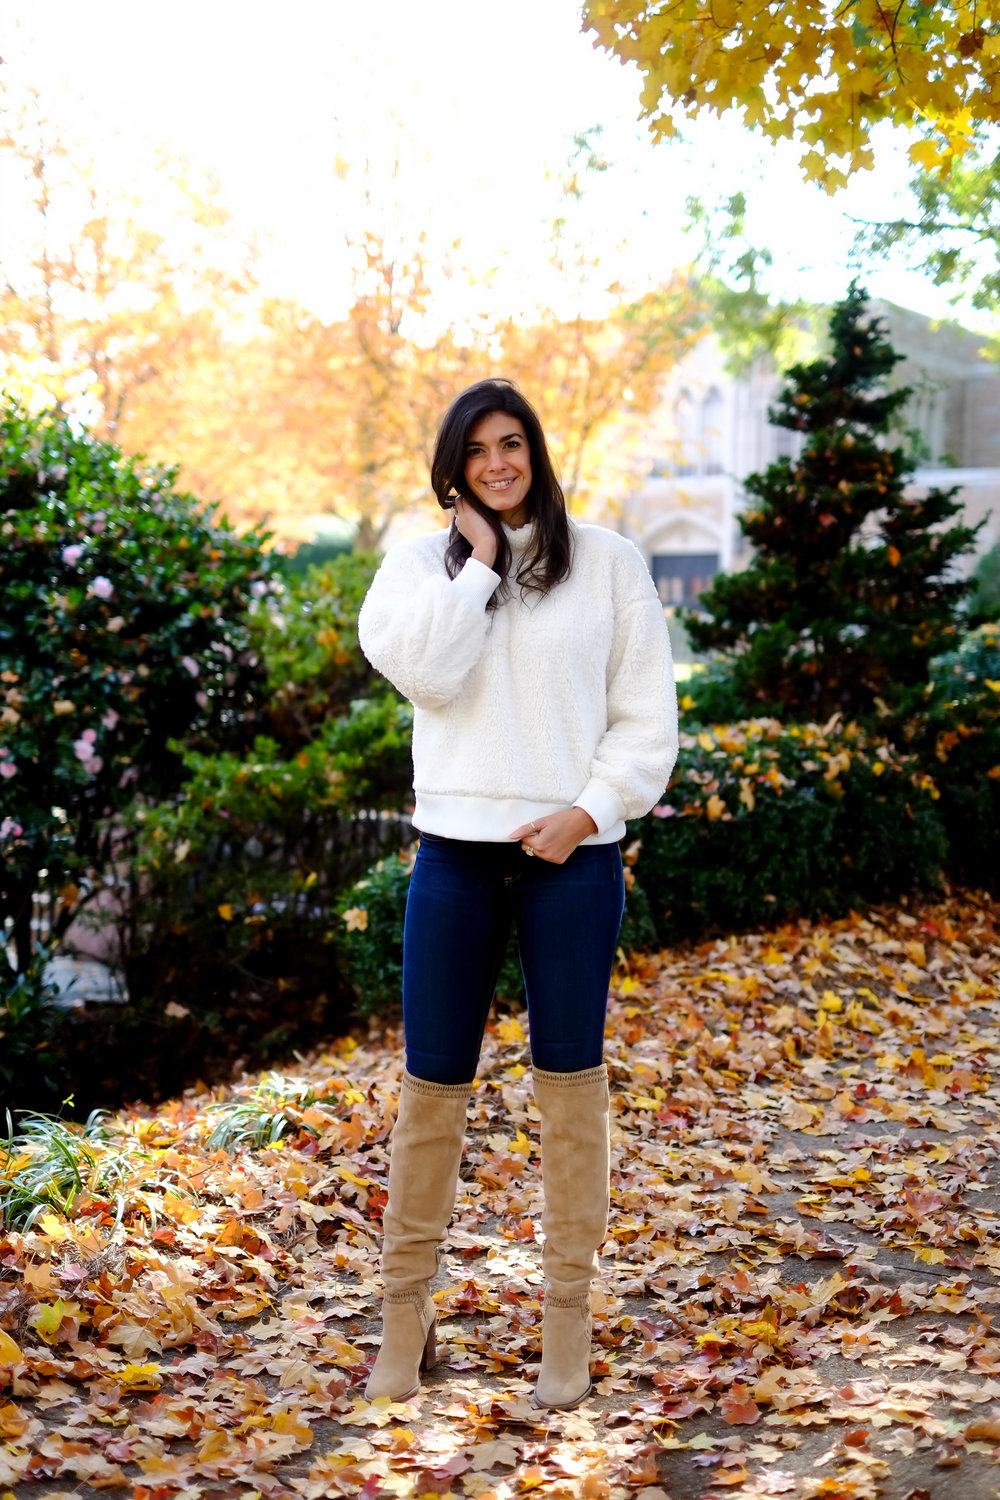 cozy-chic-outfit-inspiration-lauren-schwaiger-charlotte-style-blogger.jpg